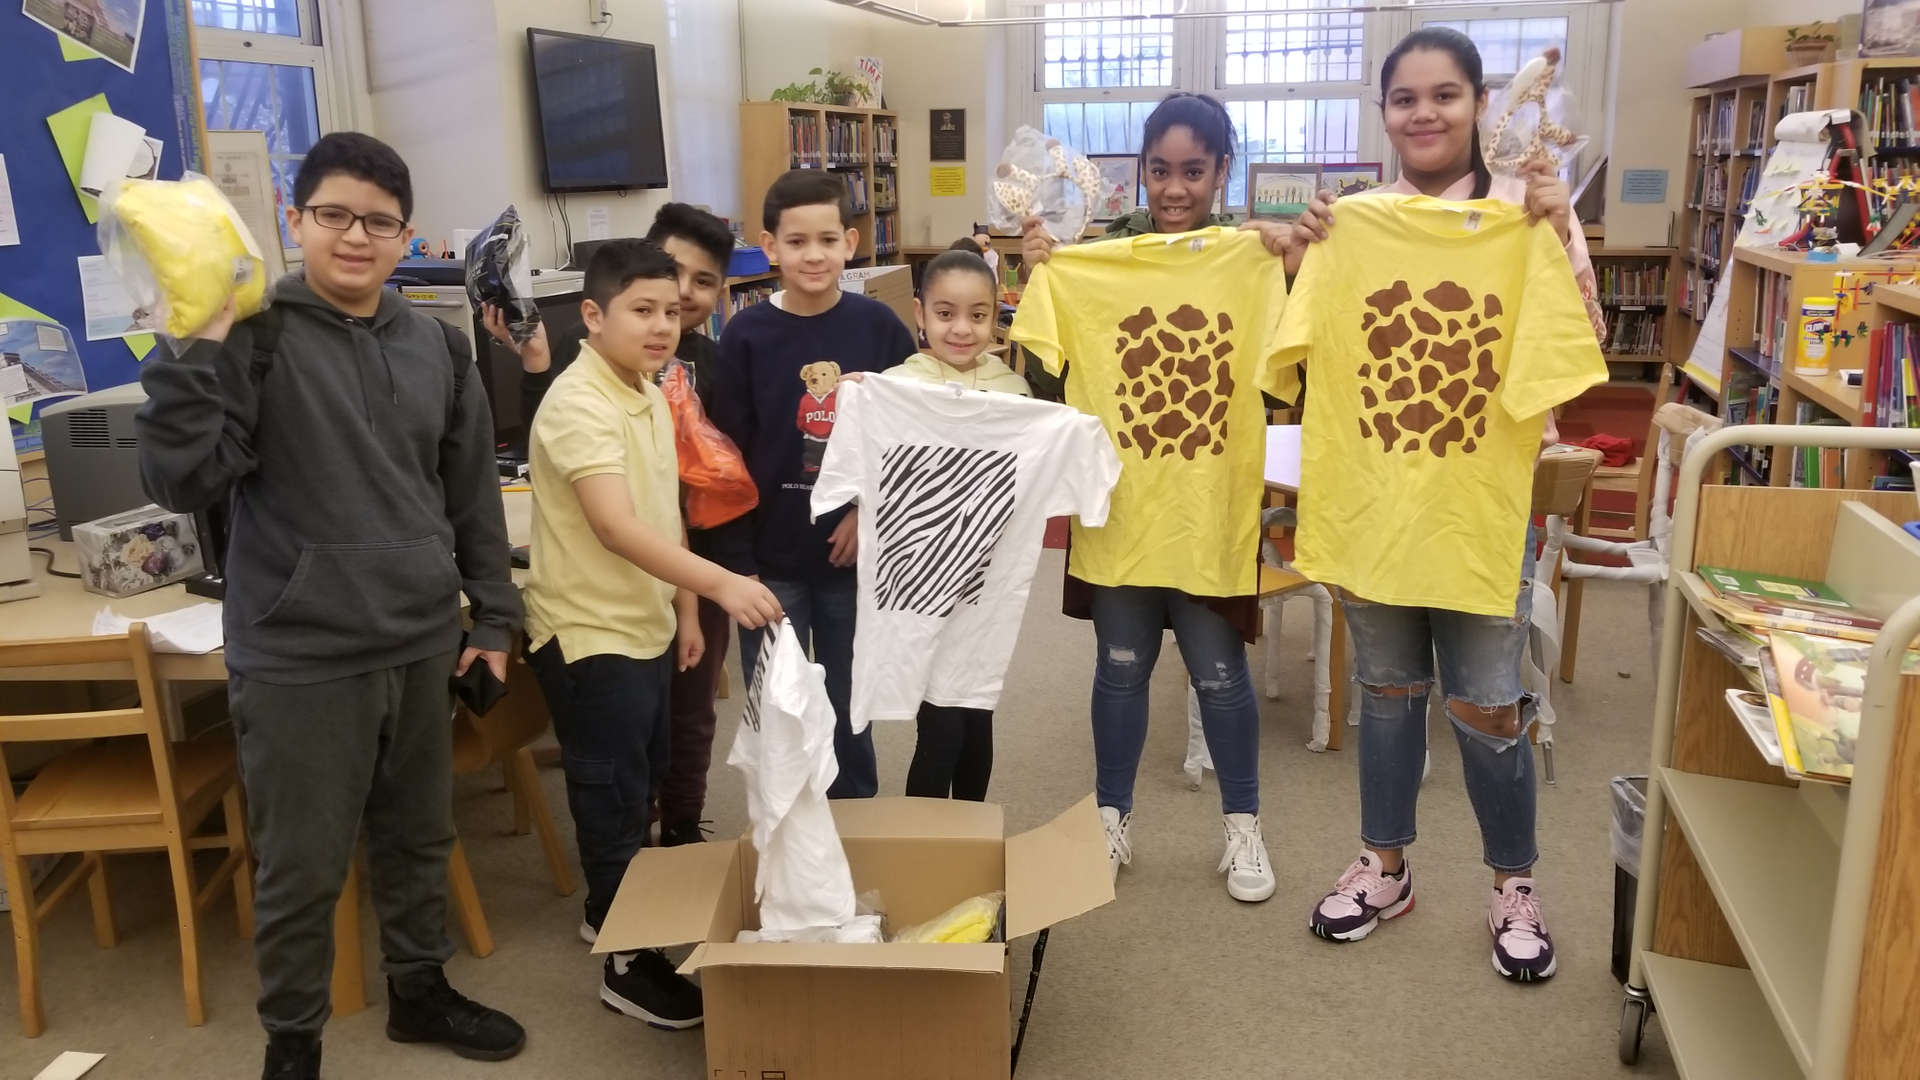 Students holding giraffe t shirts received from Donors Choose